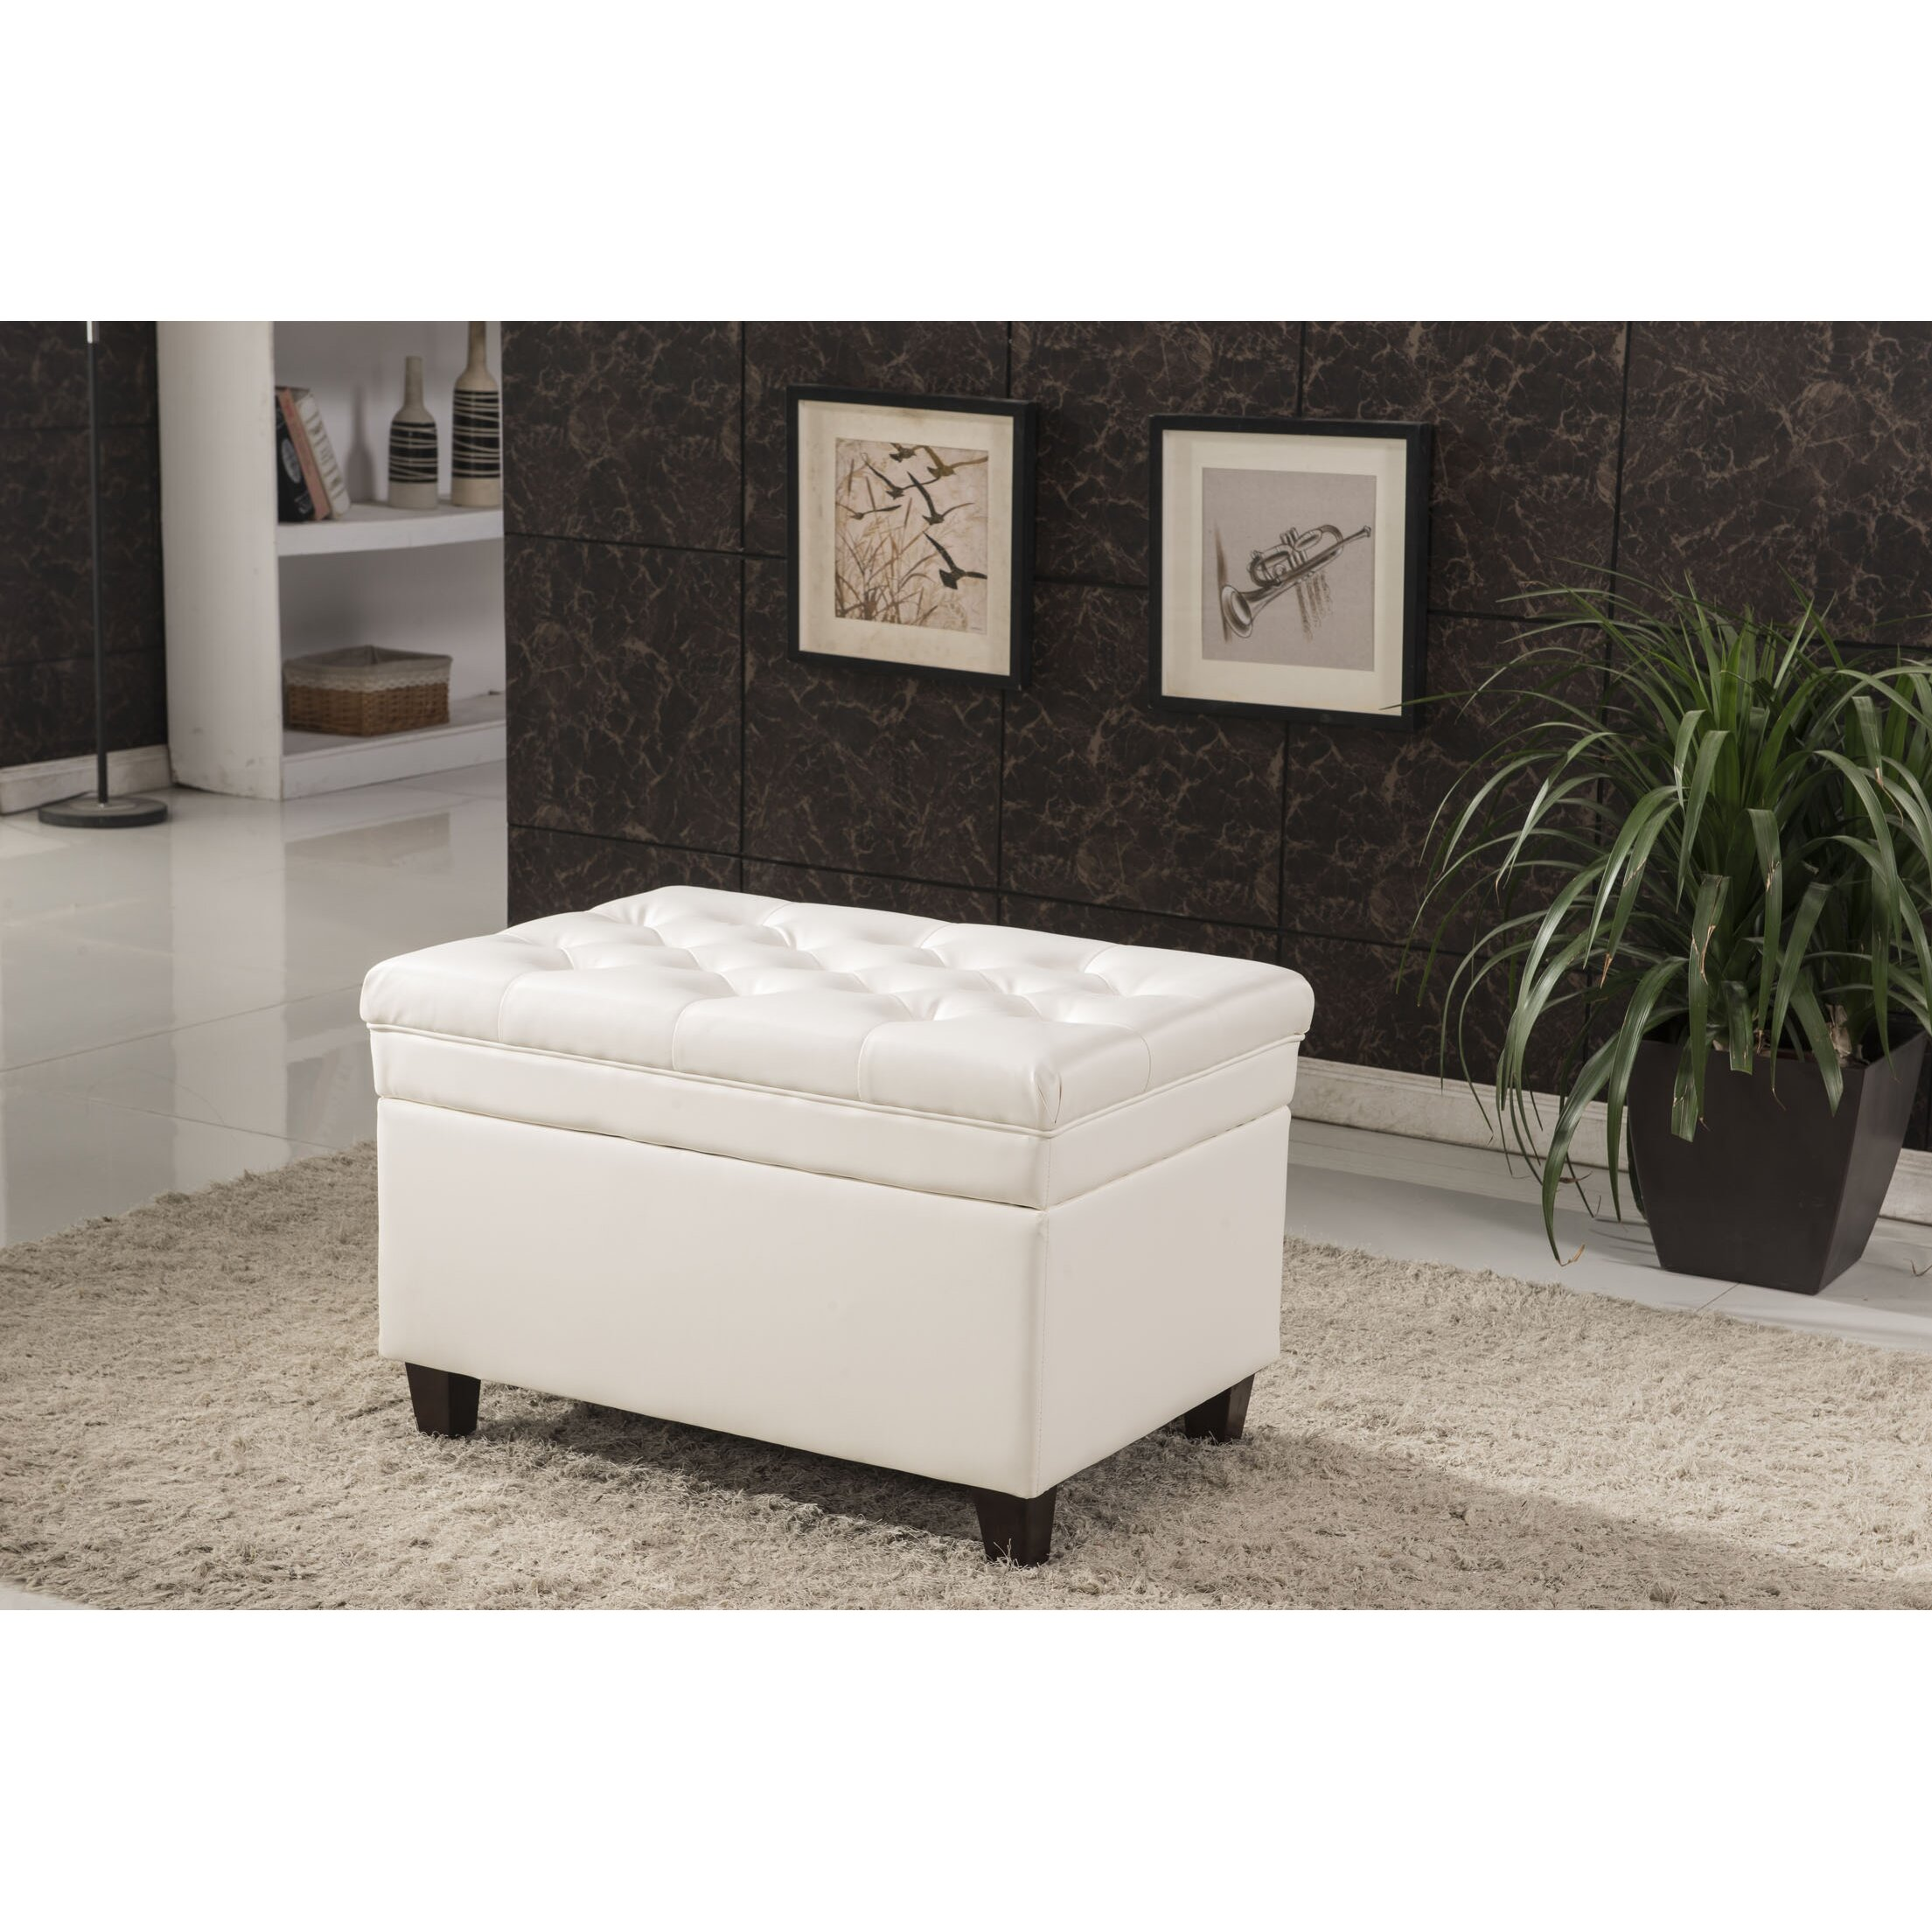 Bellasario Collection Classic Tufted Waxed Texture Storage